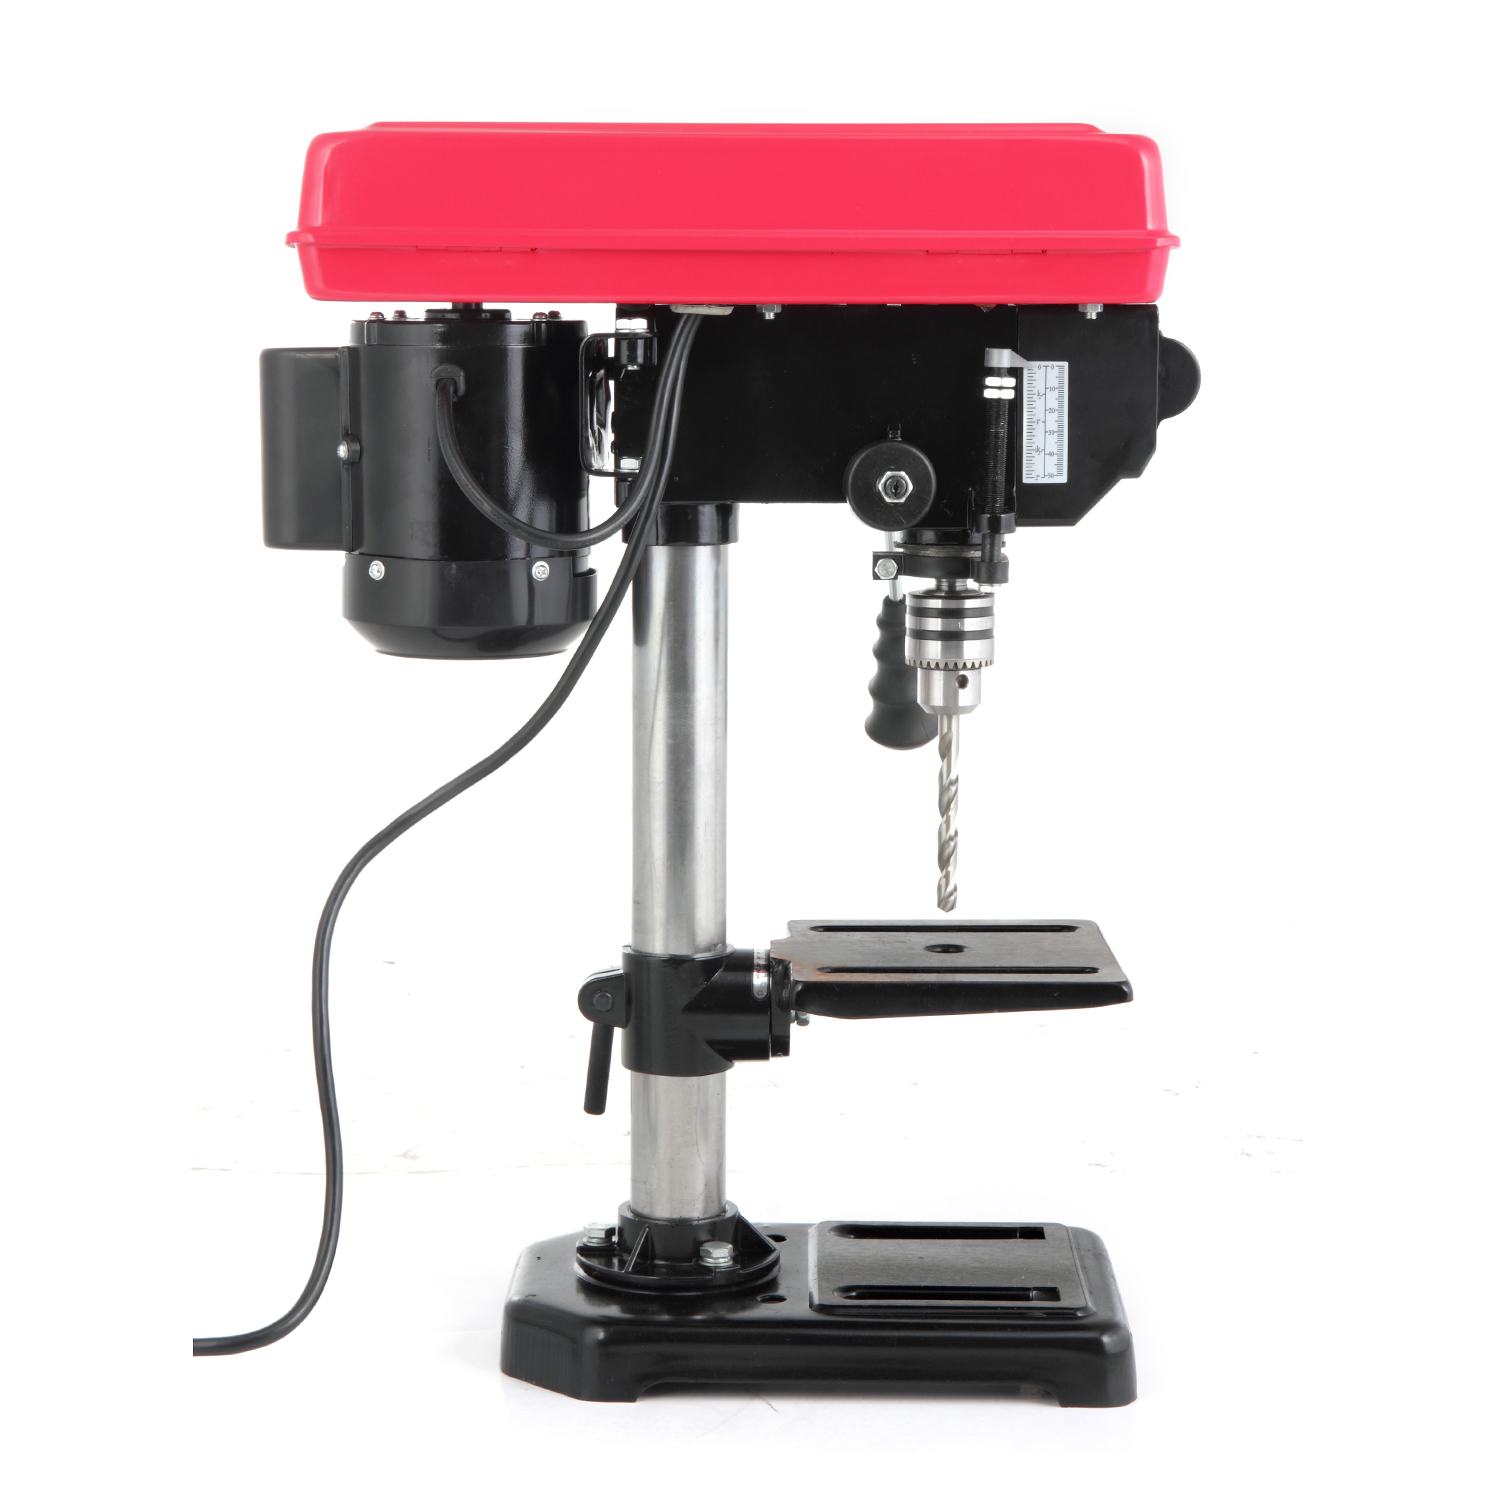 Hyper Tough AQ00016G 8 - Inch, 5 Speed Drill Press